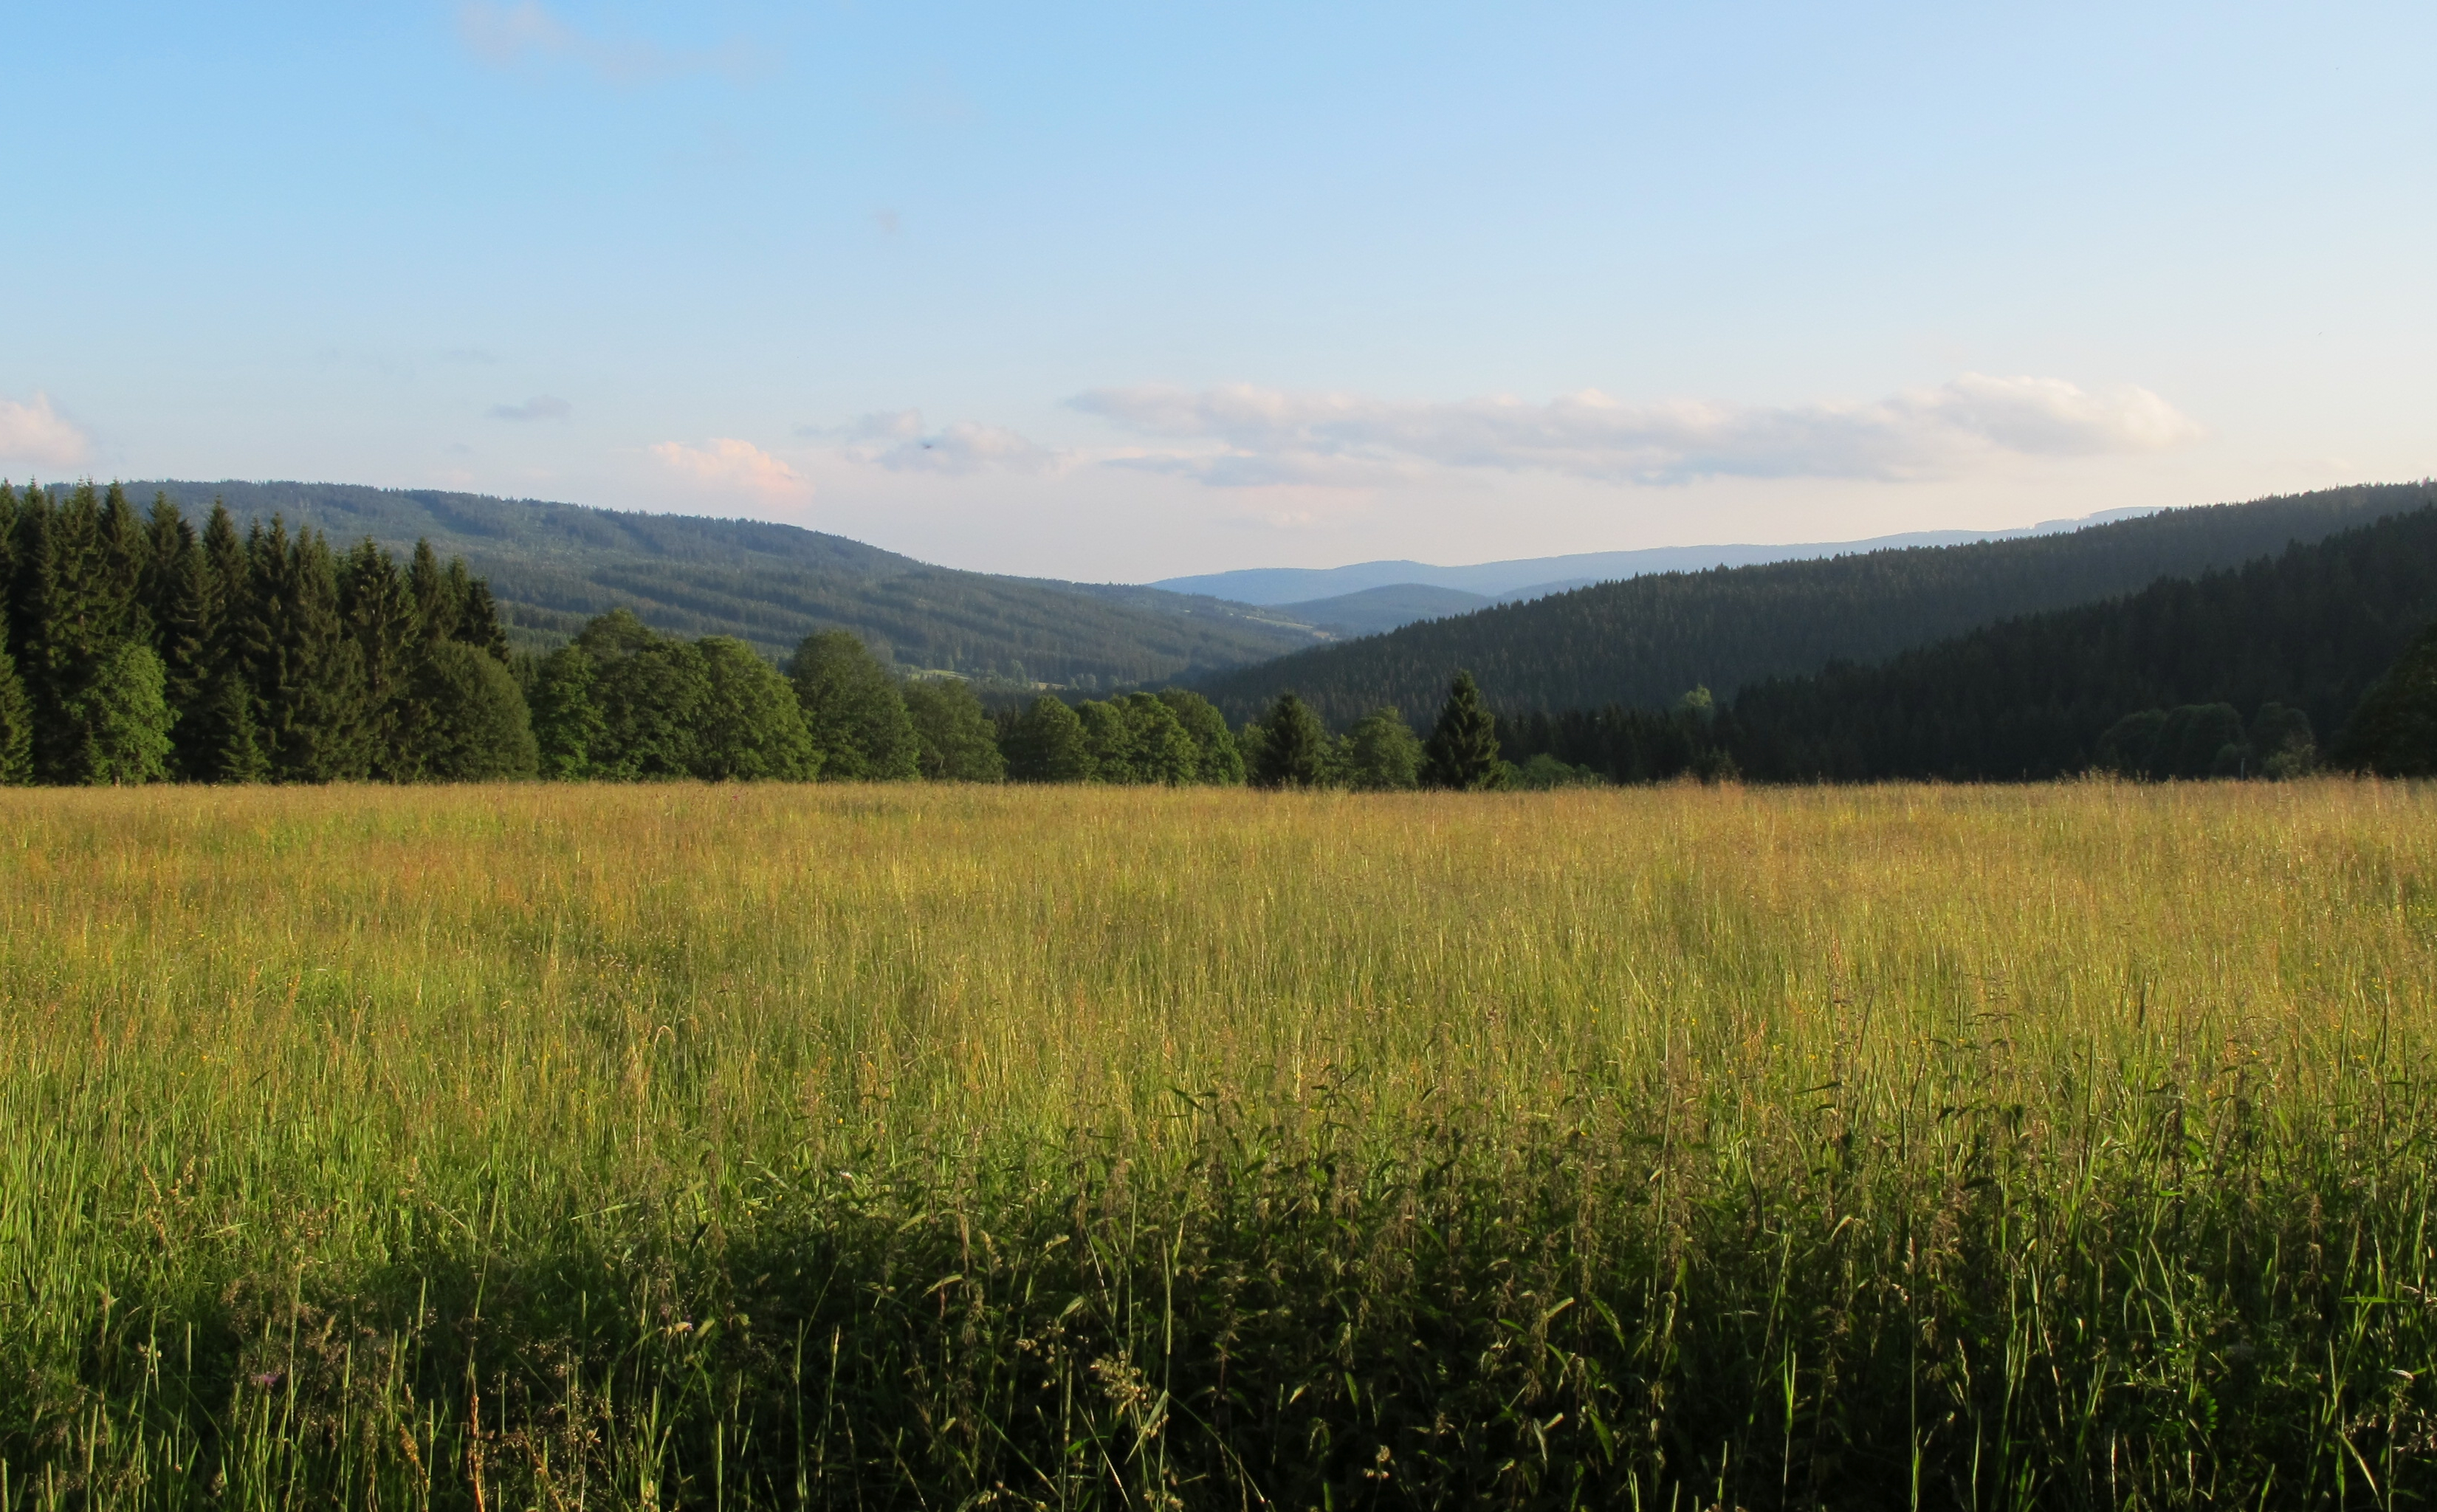 File:Grassfield in Šumava region (2).jpg - Wikimedia Commons